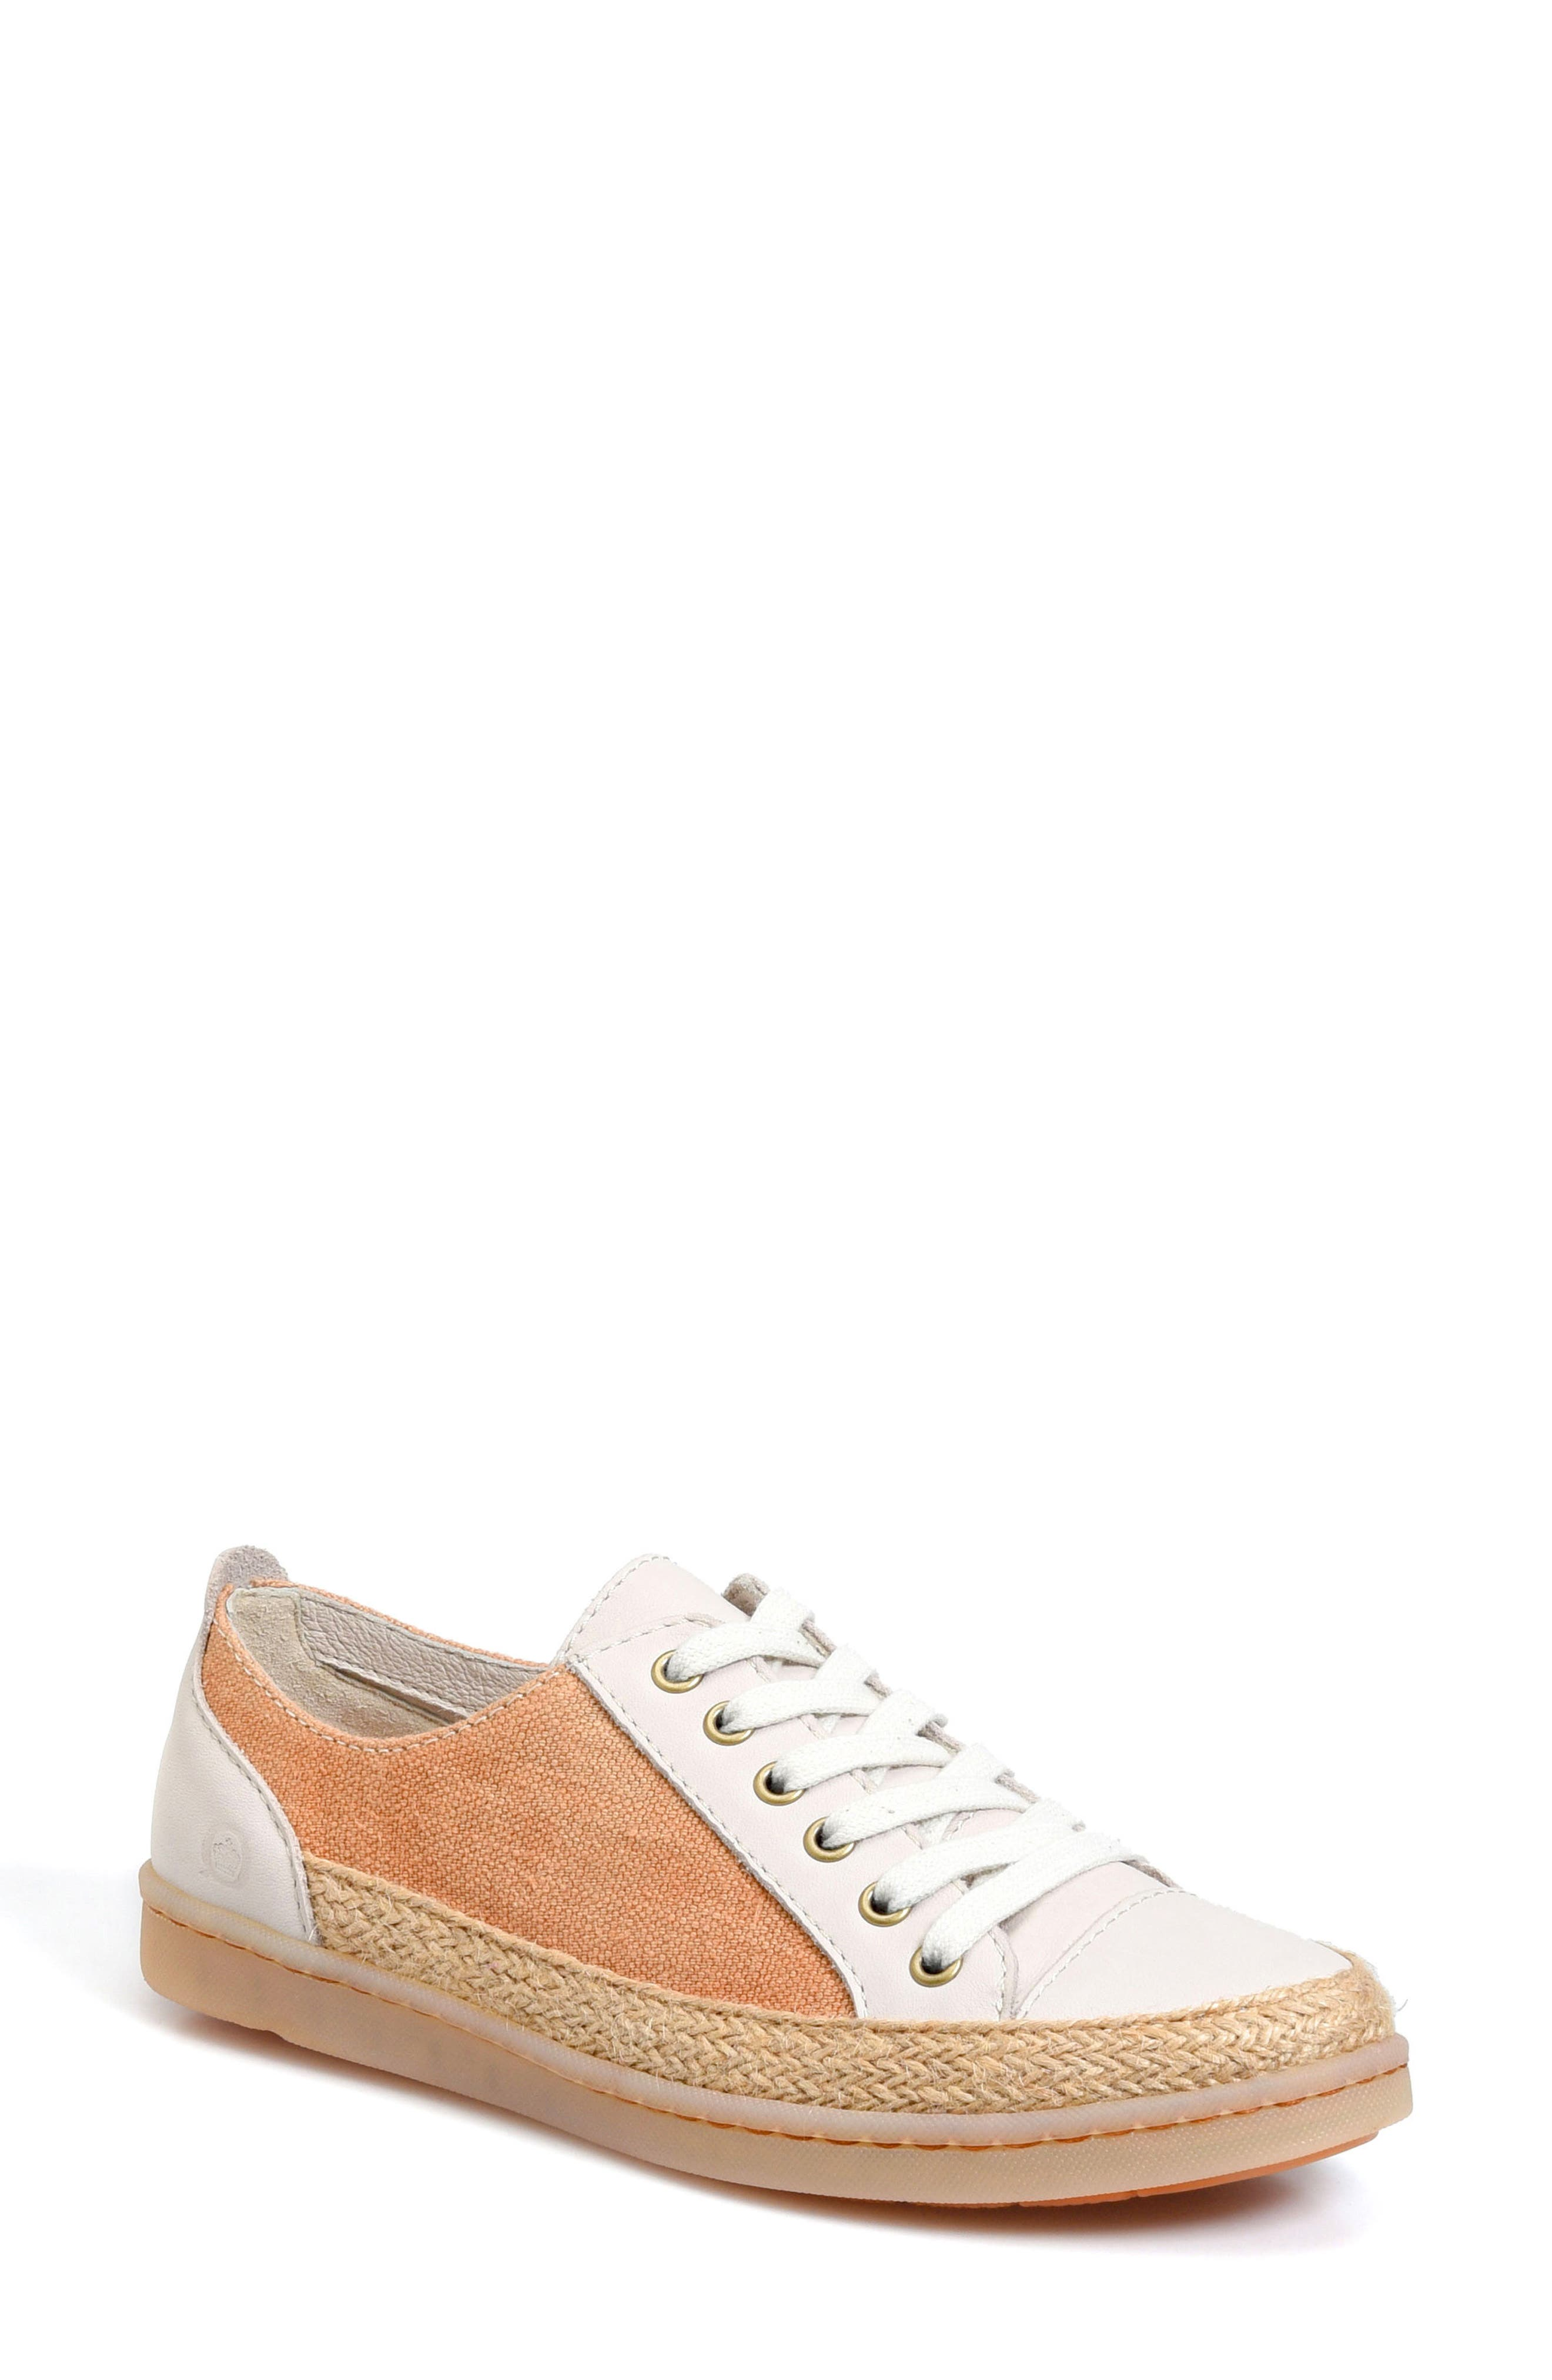 Alternate Image 1 Selected - Børn Corfield Sneaker (Women)